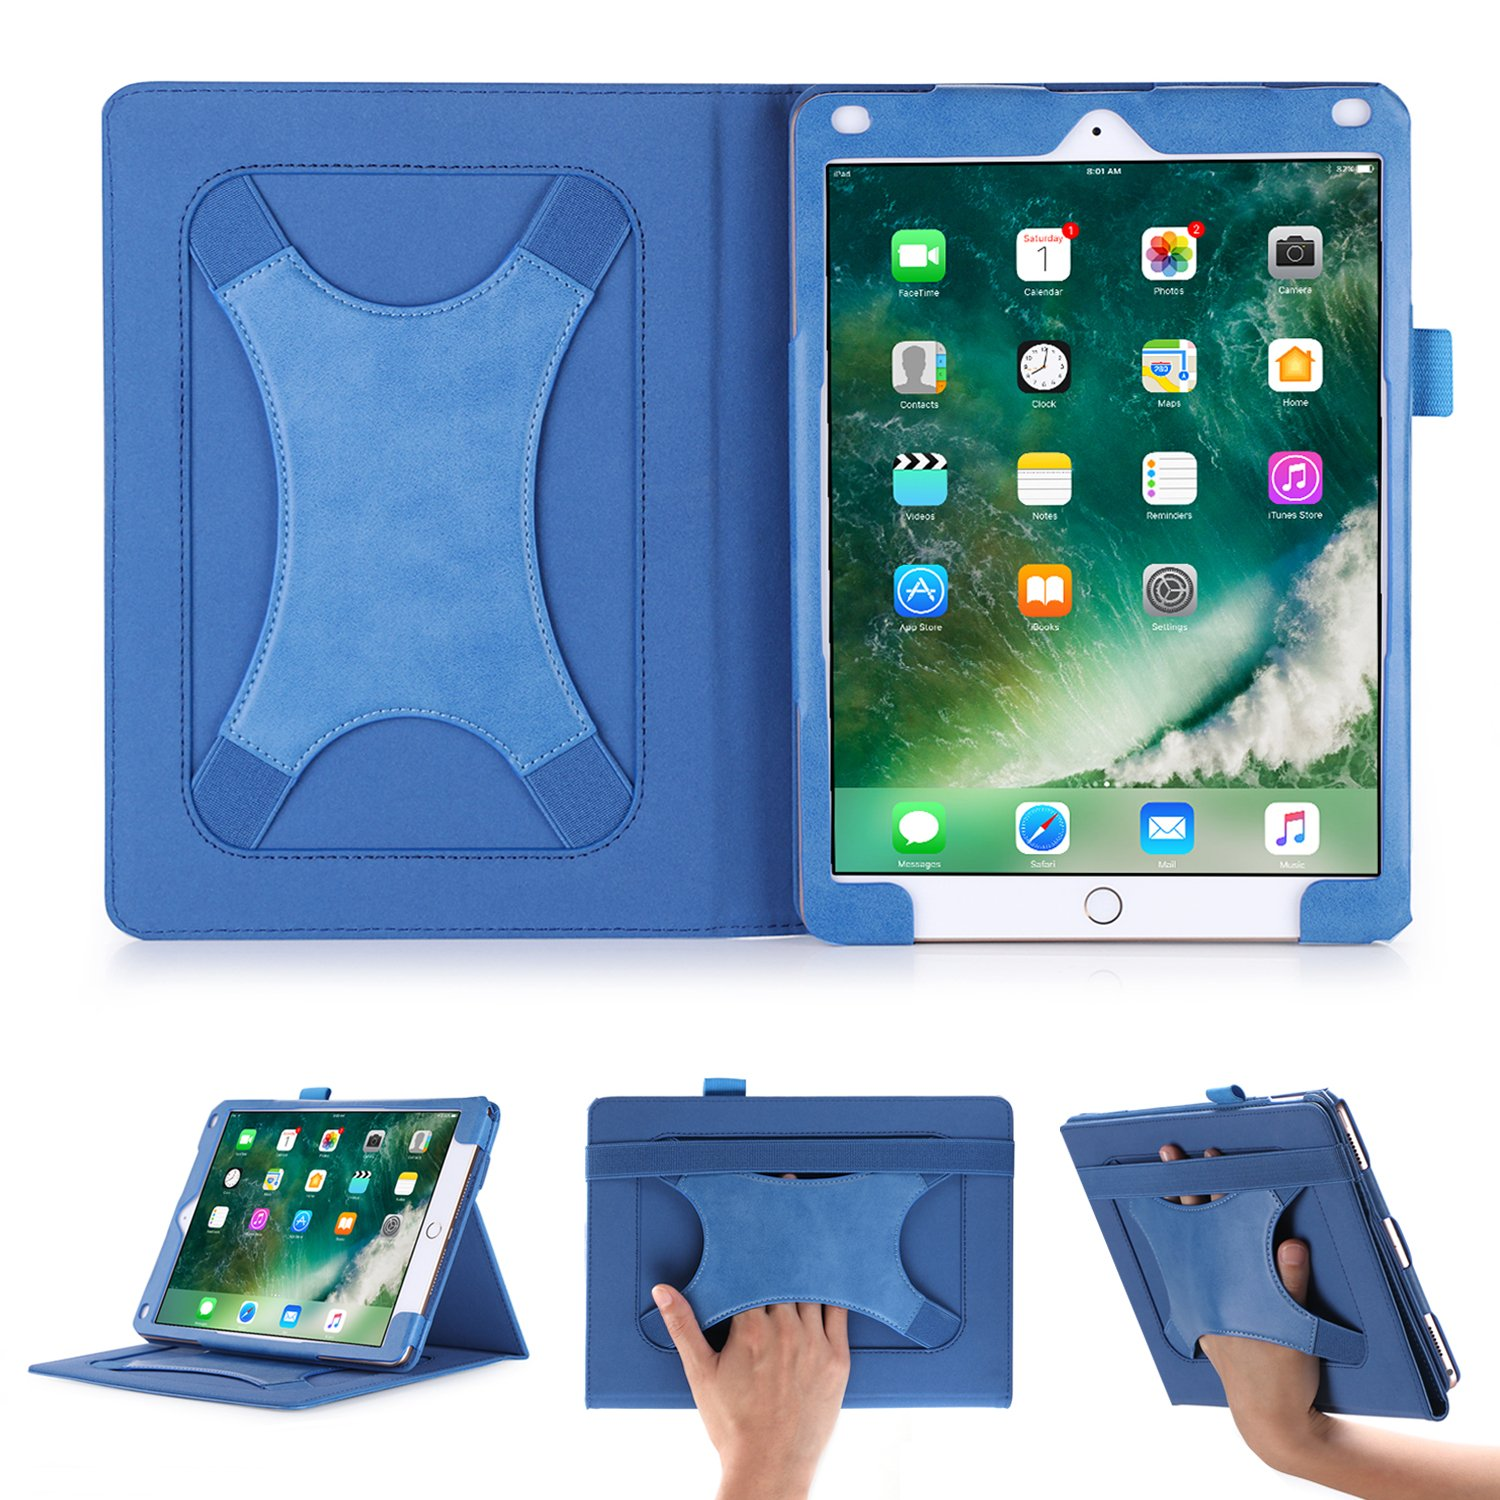 Beepole Pro 10.5 Case with Multi Angle Support Xband Enhanced Hand Strap - PU Leather Case Cover for New iPad Pro 10.5 Inch 2017 with Magnetic Auto Wake/Sleep Feature (Blue)